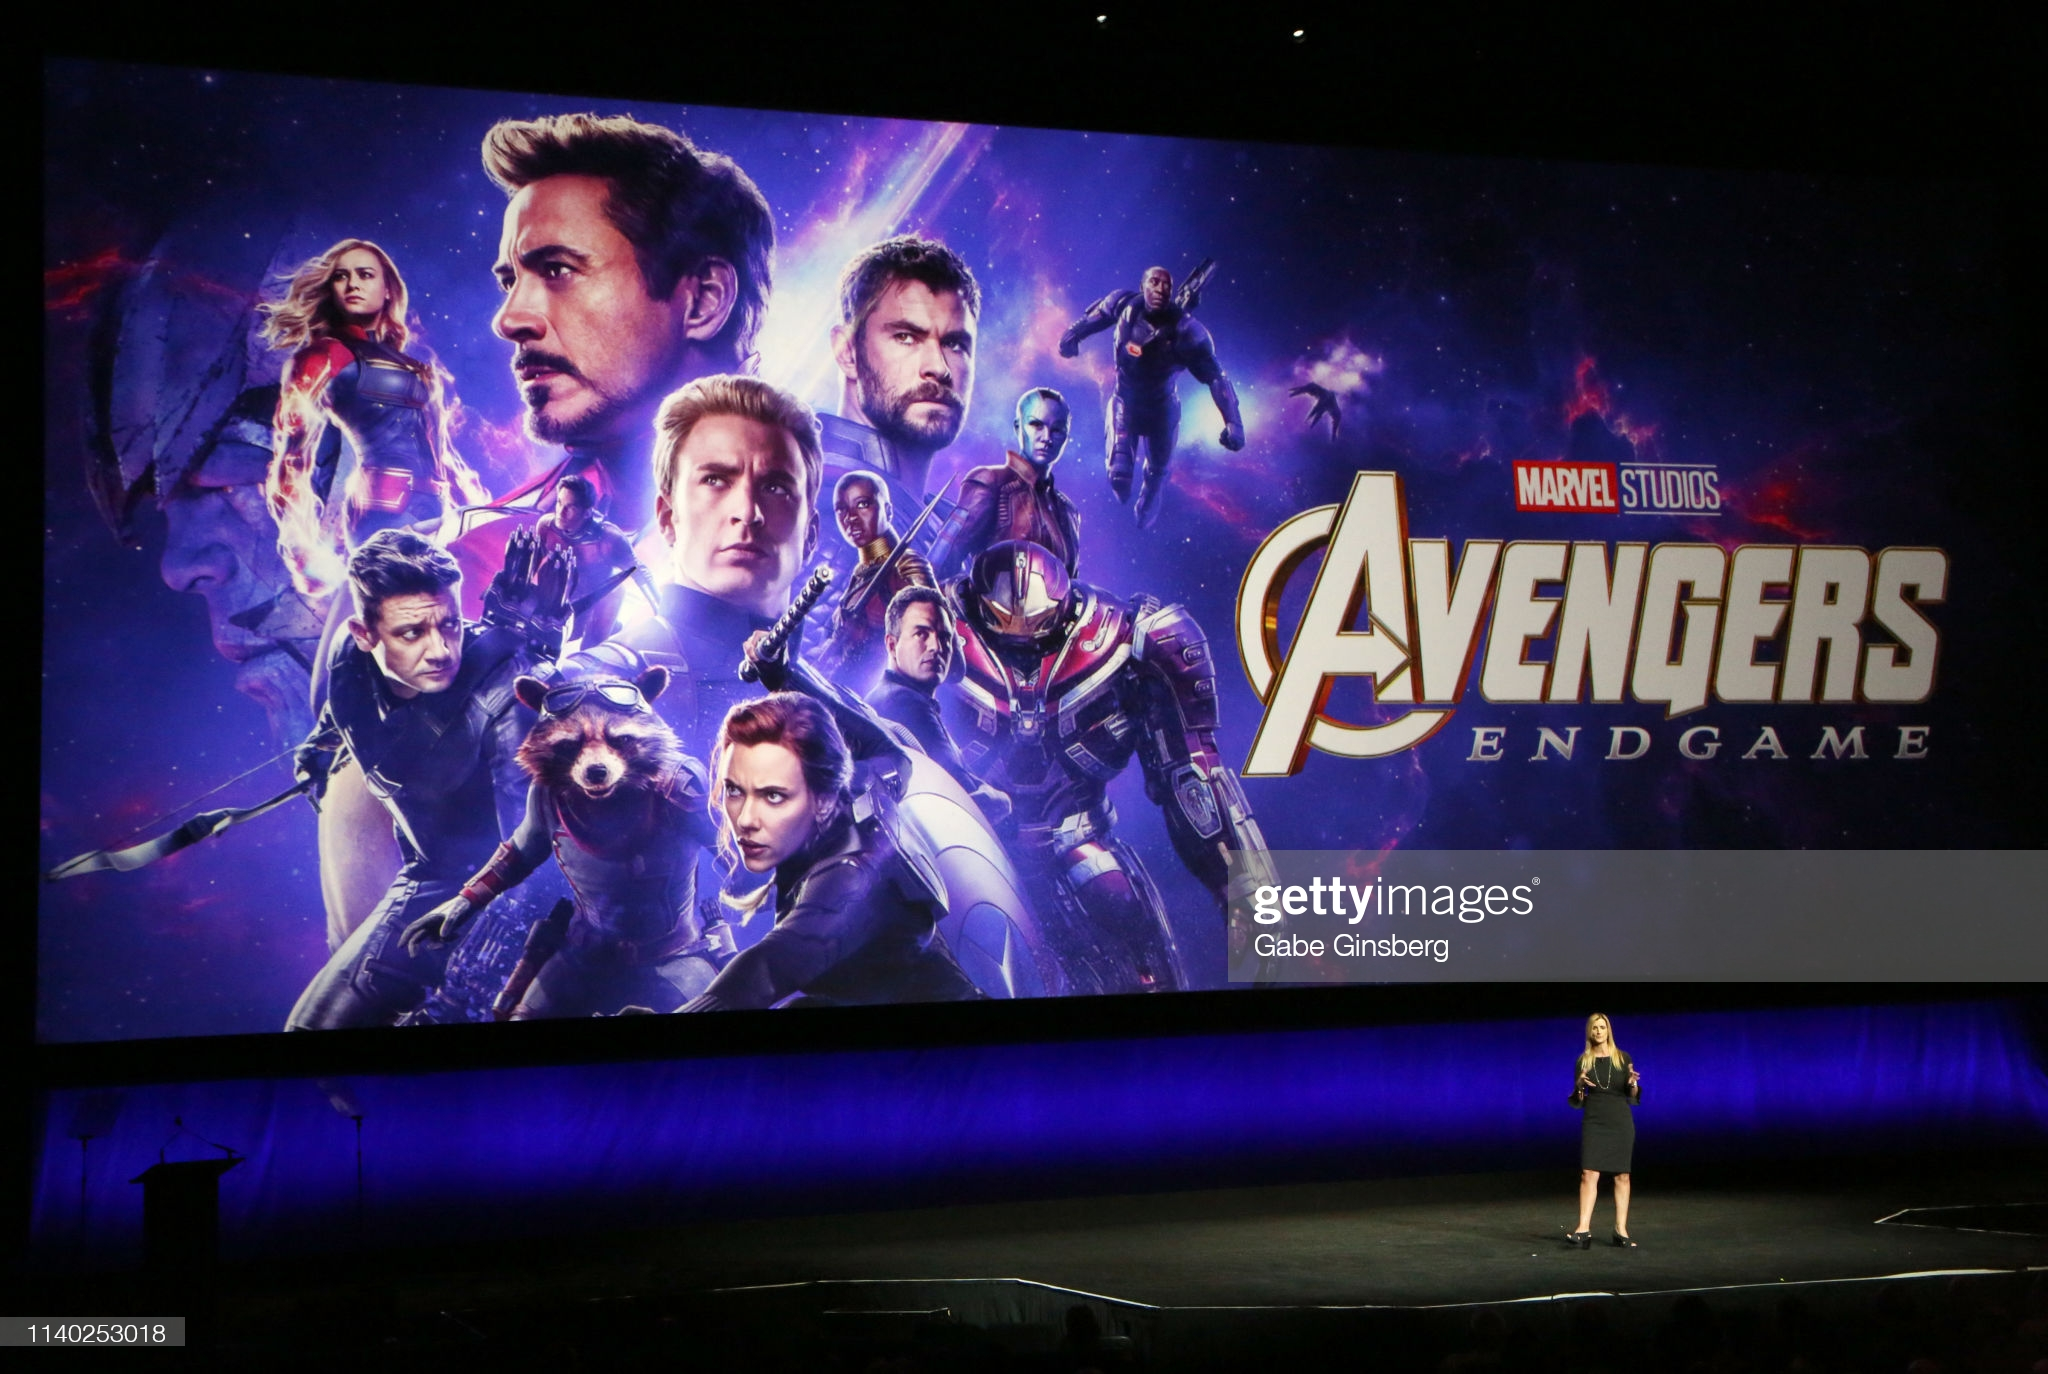 """LAS VEGAS, NEVADA - APRIL 03:  Walt Disney Studios Motion Pictures President of Walt Disney Distribution Franchise Management, Business & Audience Insights Cathleen Taff talks about the upcoming movie """"Avengers: Endgame"""" during Walt Disney Studios Motion Pictures special presentation during CinemaCon at The Colosseum at Caesars Palace on April 03, 2019 in Las Vegas, Nevada. CinemaCon is the official convention of the National Association of Theatre Owners. (Photo by Gabe Ginsberg/WireImage)"""